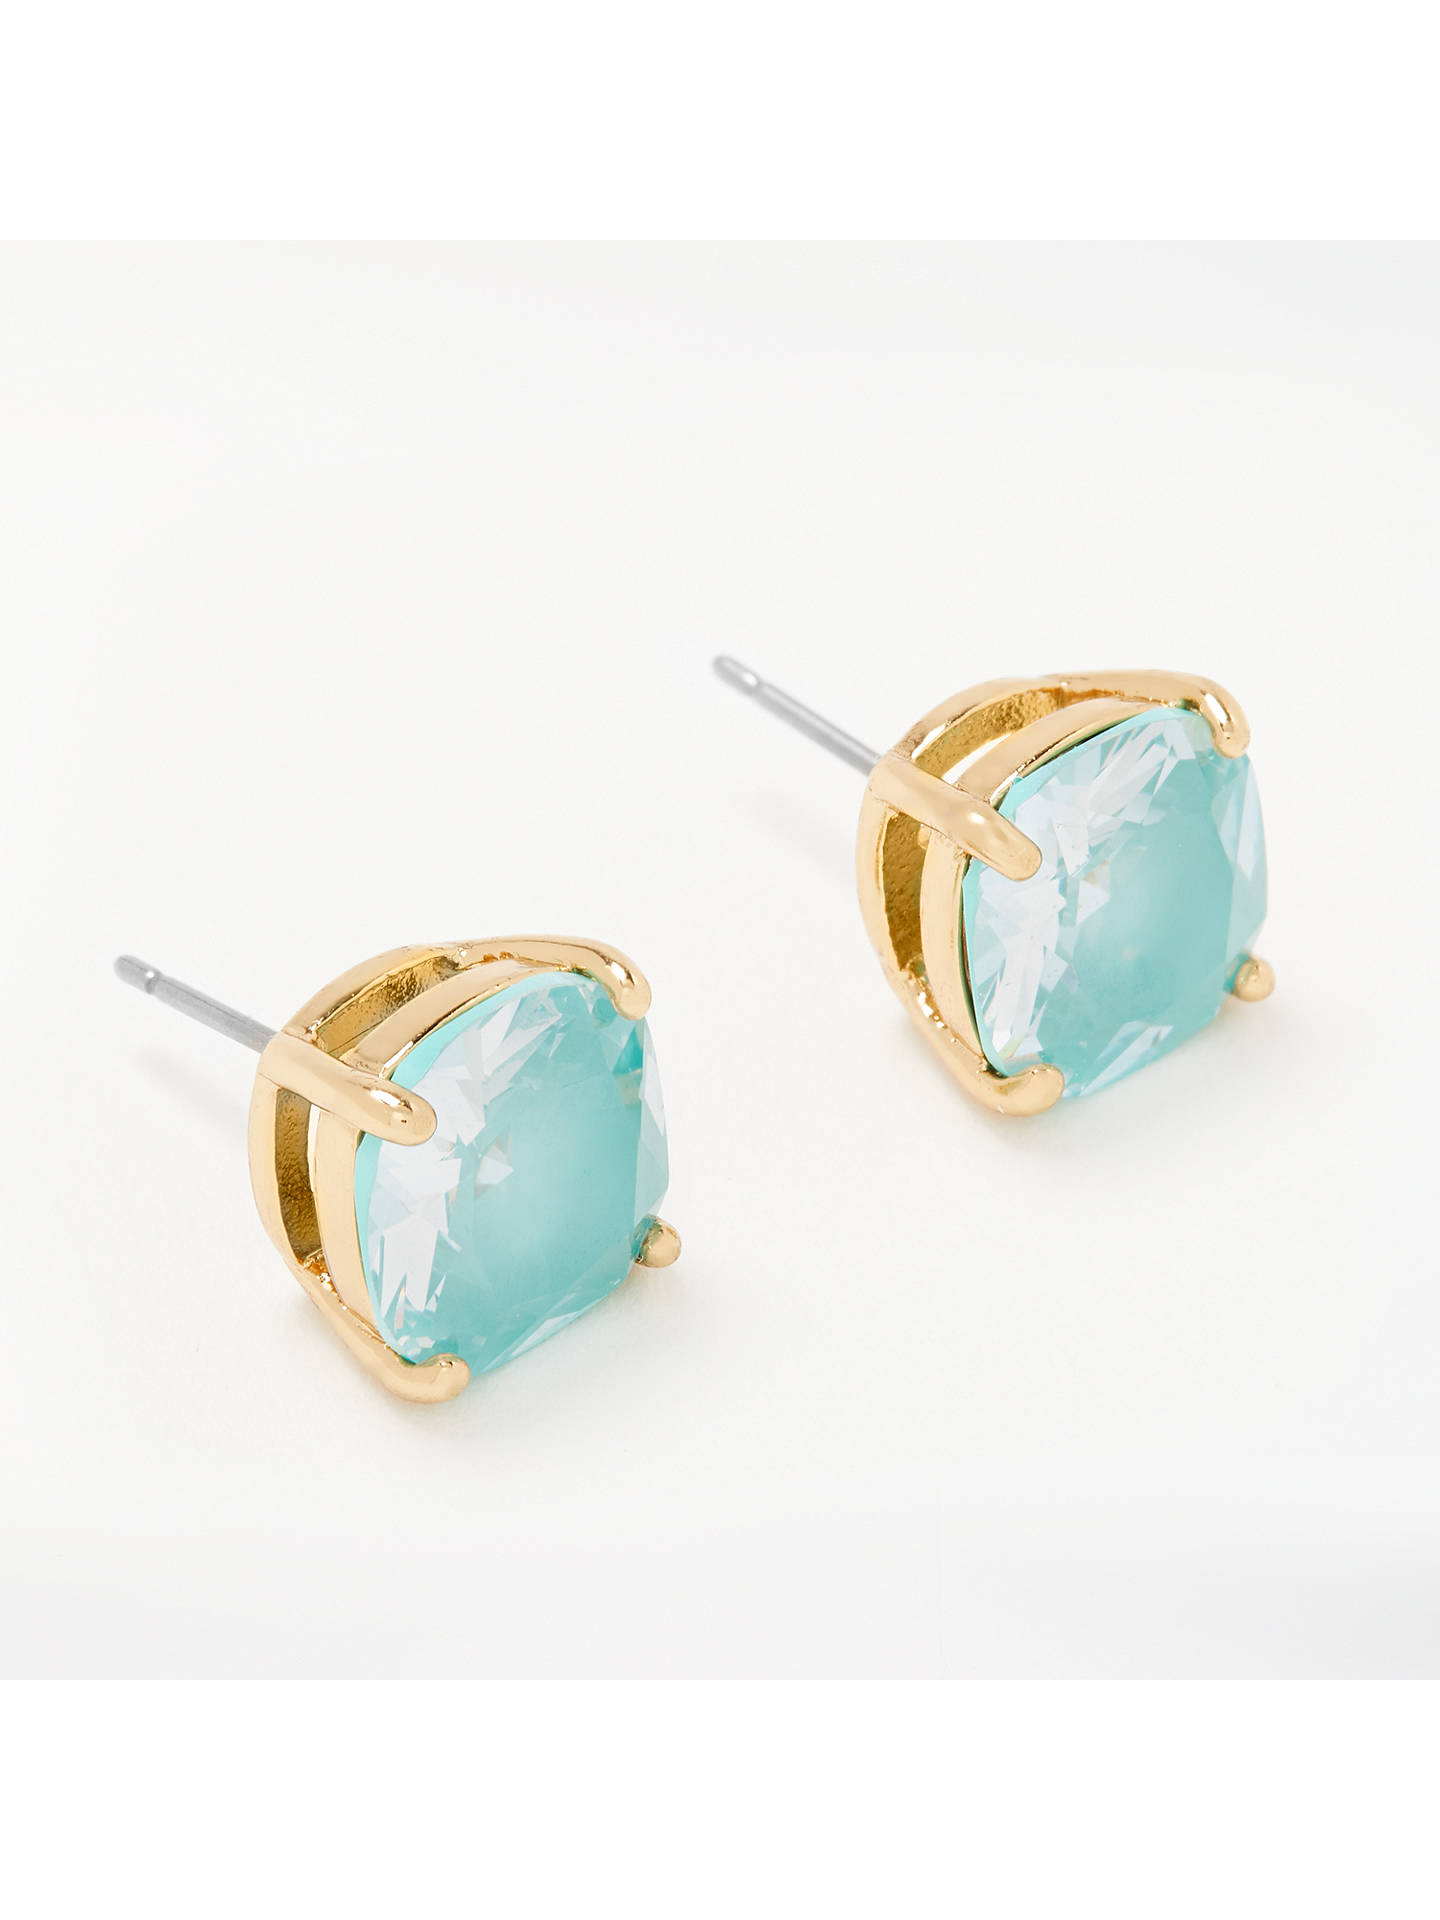 2ddfaa0311802d Buy kate spade new york Mini Square Stud Earrings, Mint Online at  johnlewis.com ...